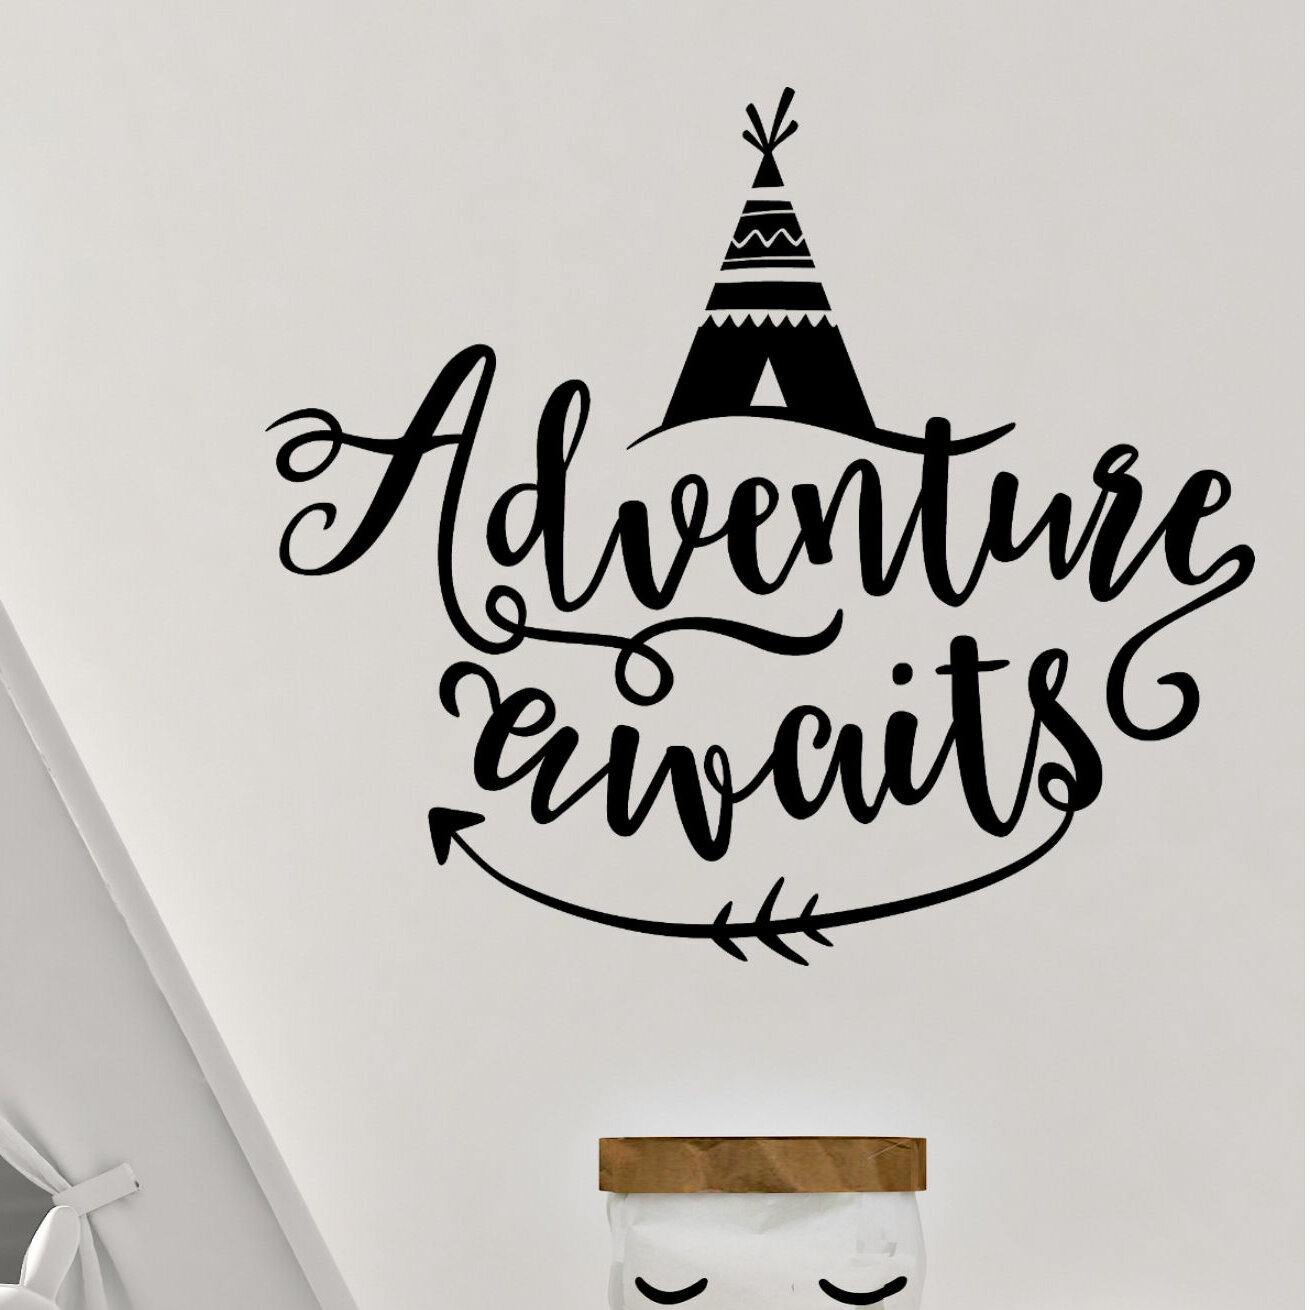 Decalthewalls Adventure Awaits Vinyl Wall Decal Circuit Board Tree Art Graphic Stickers Decals